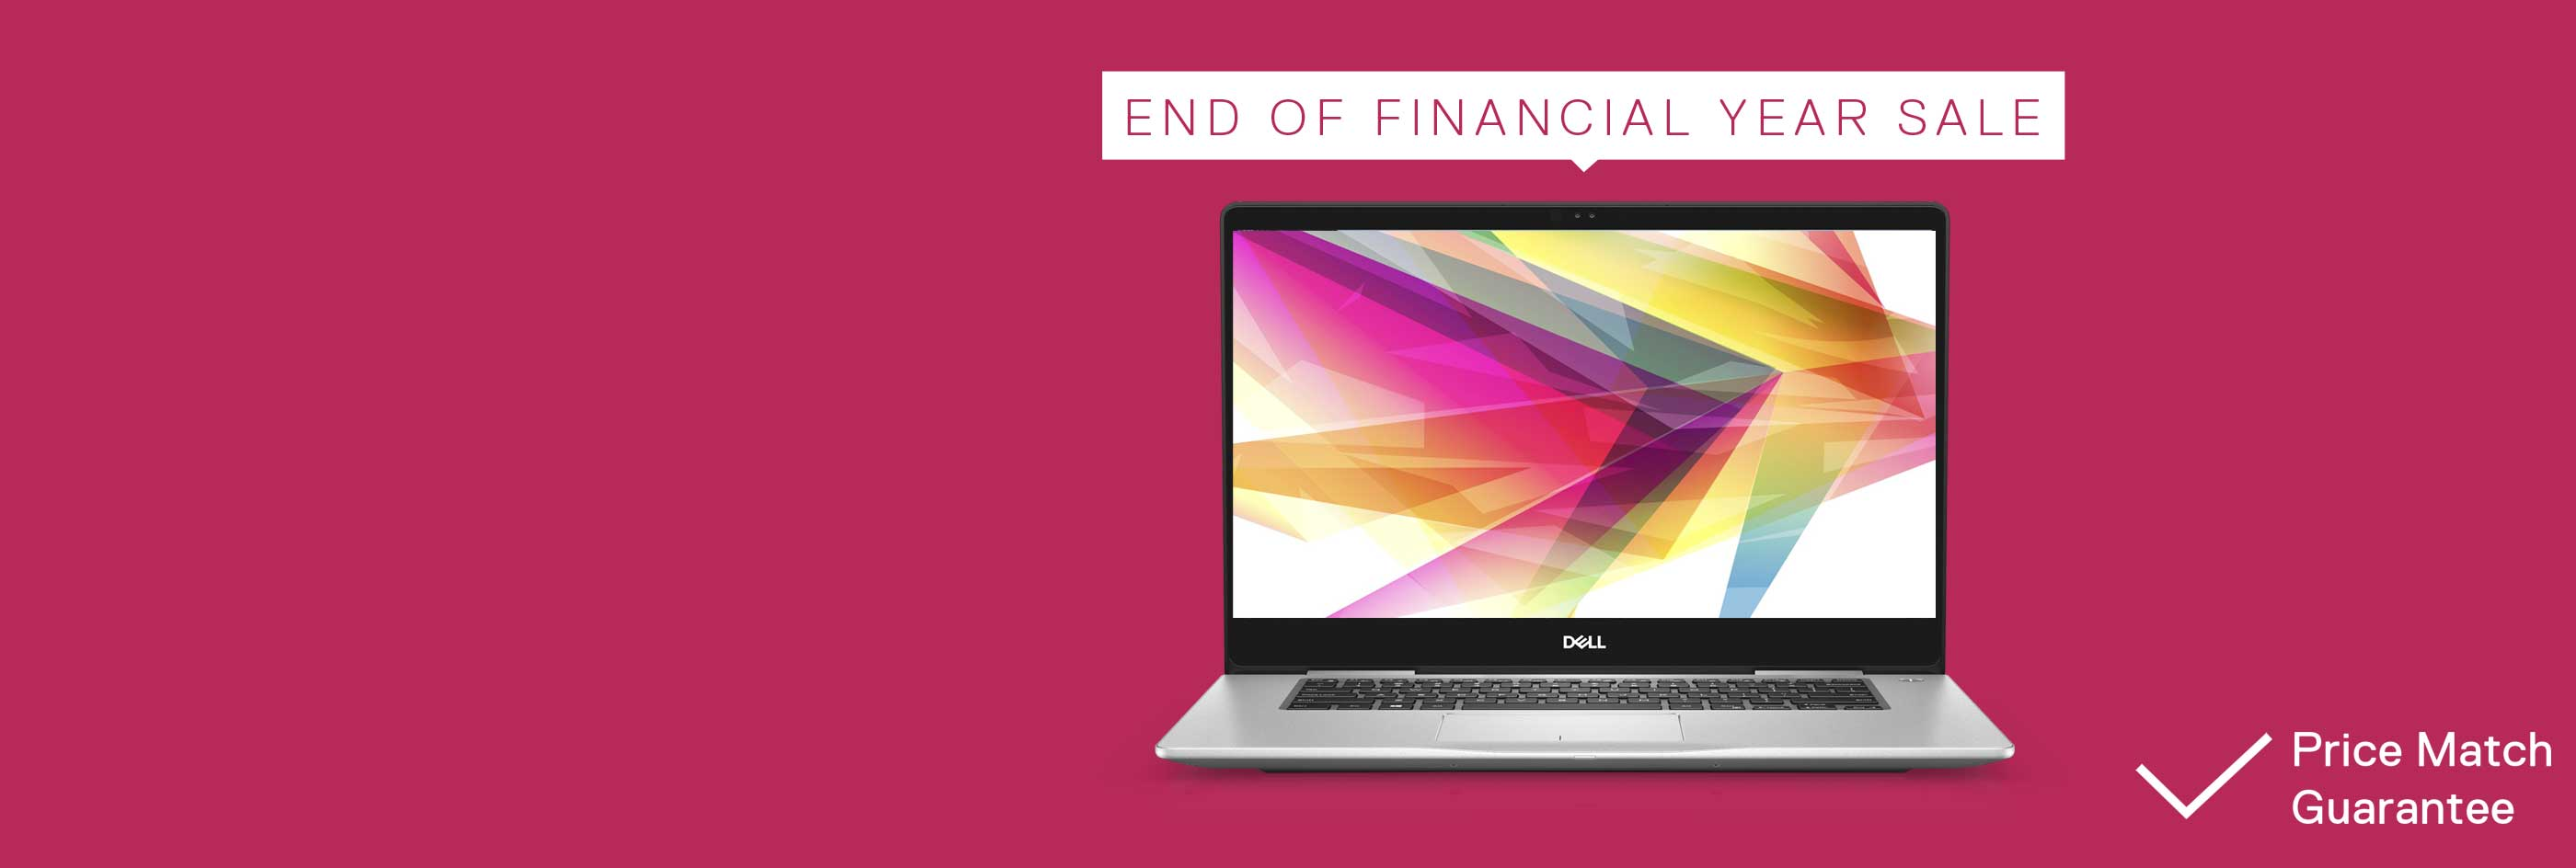 EOFY Sale for Home: Up to 50% off selected laptops.